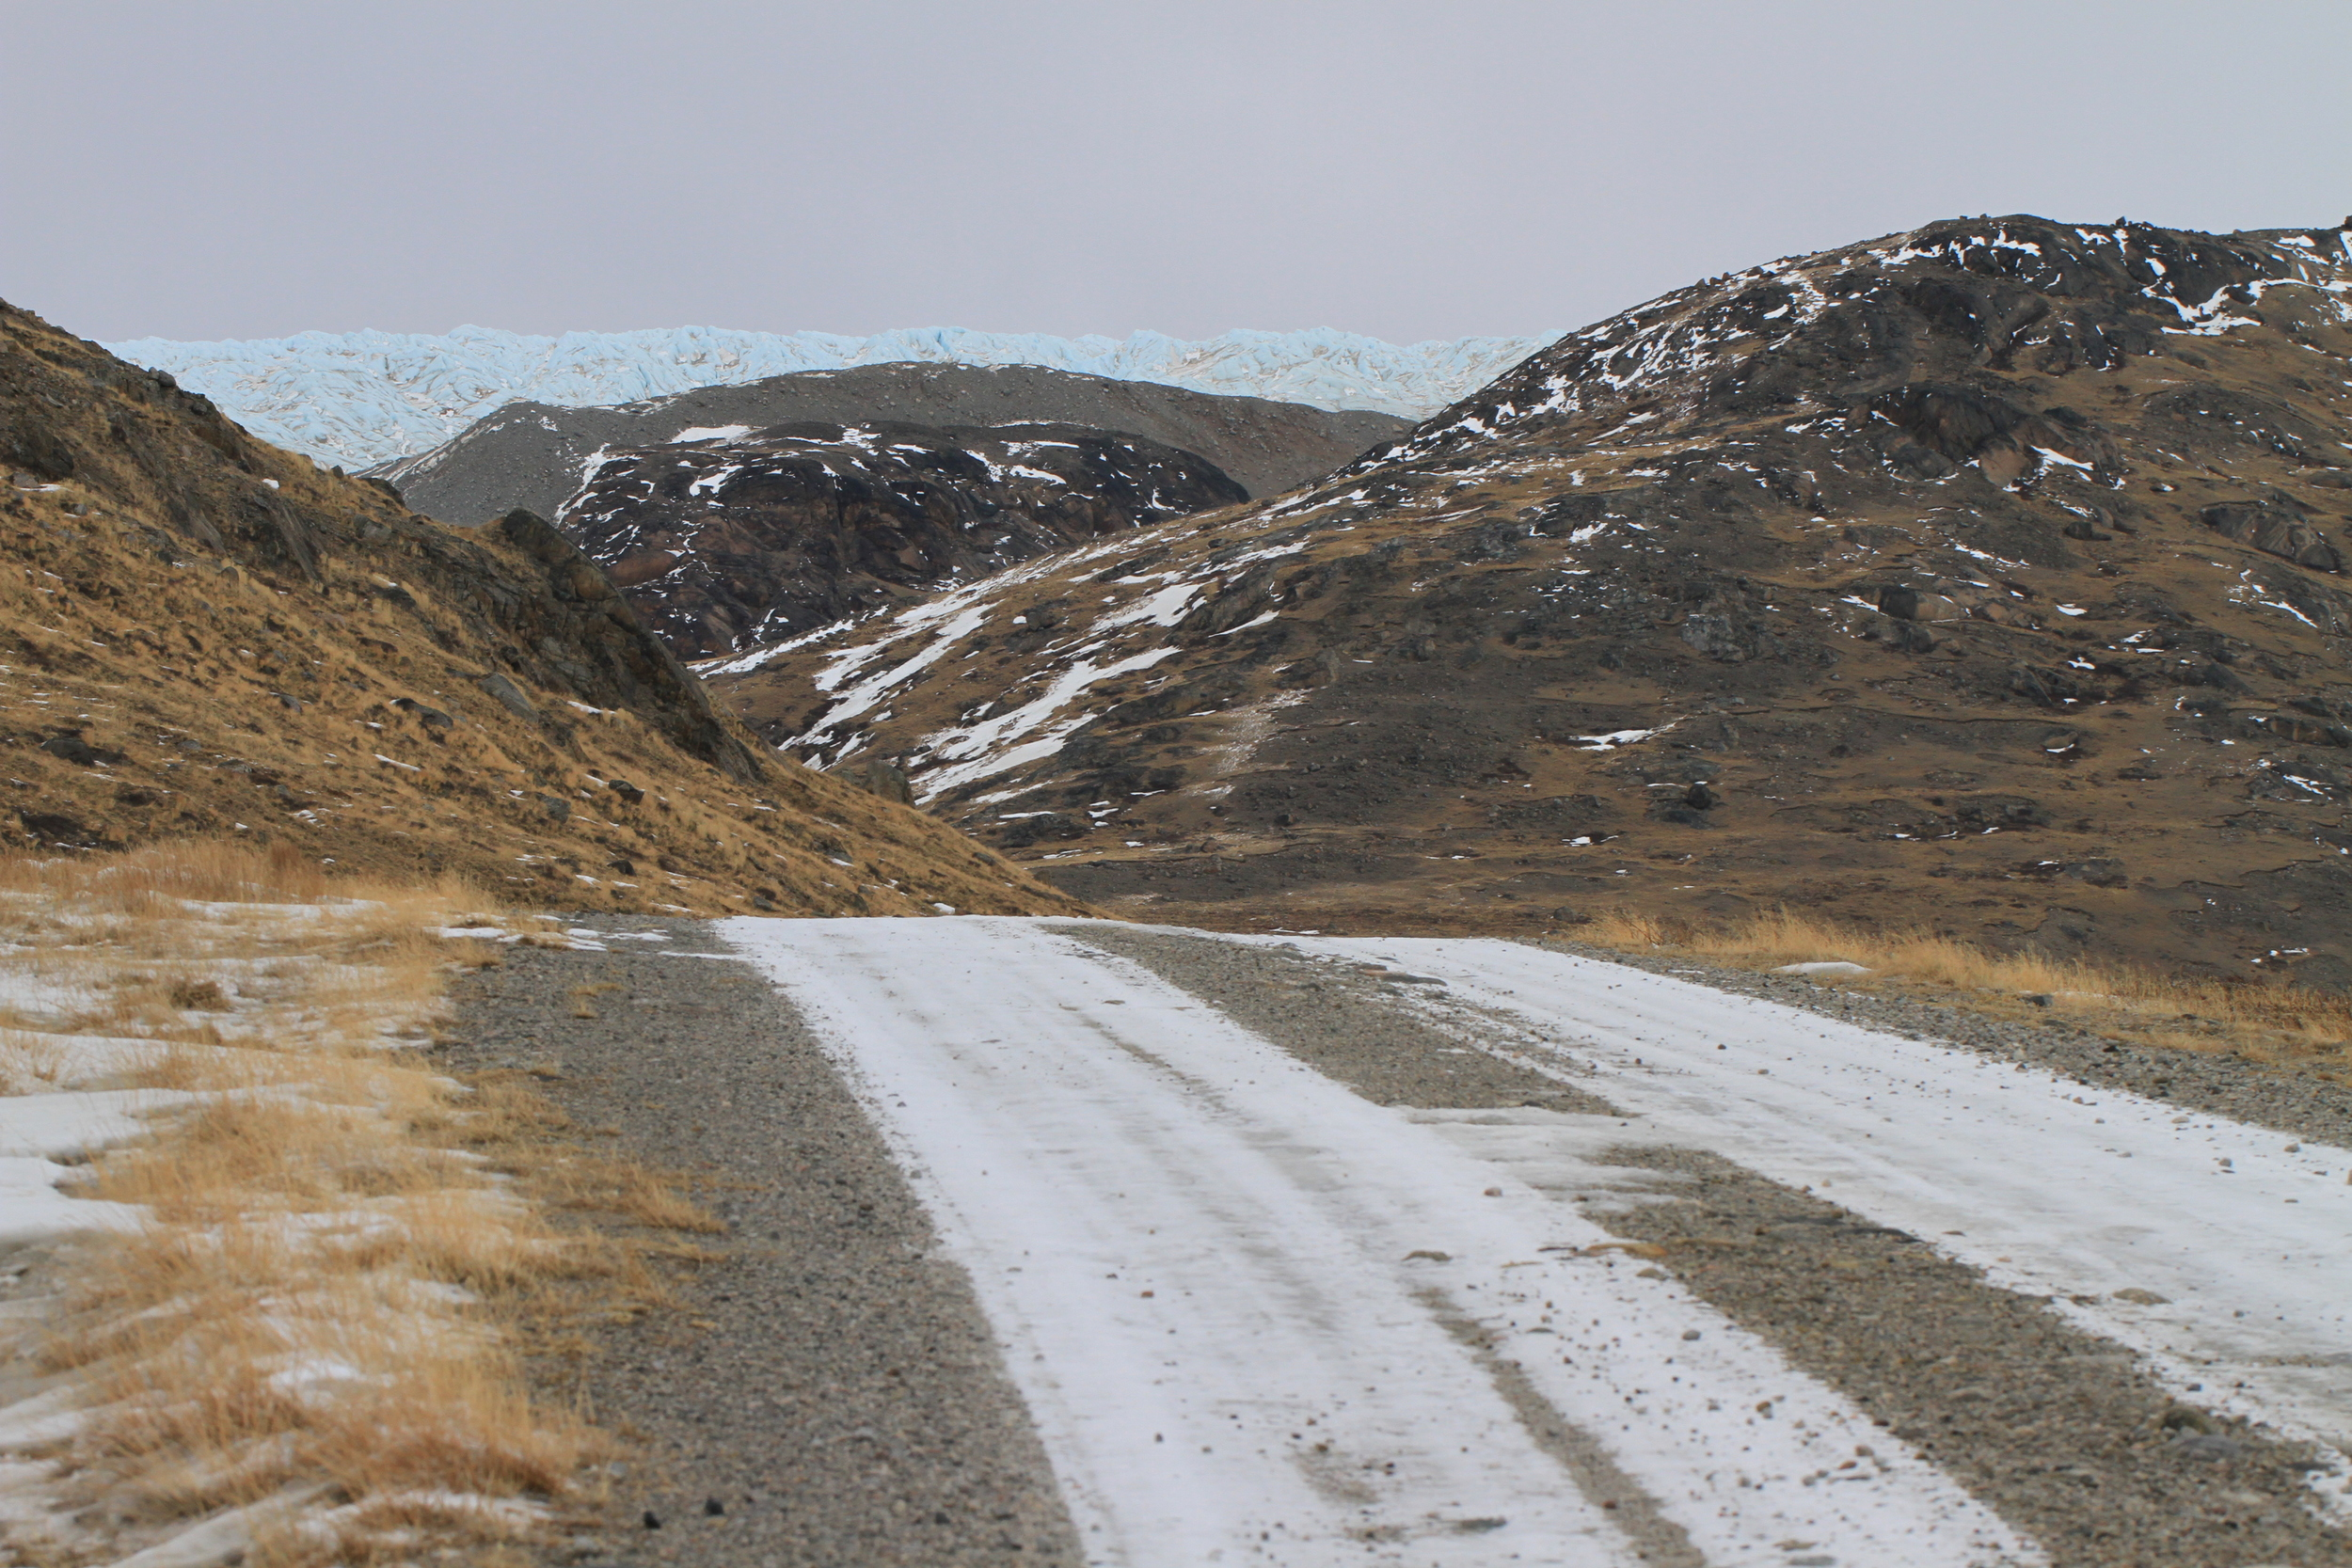 This constitutes a main road just outside of Kangerlussuaq, Greenland. If you don't like where it's going, you might be out of luck, because there aren't many alternatives.